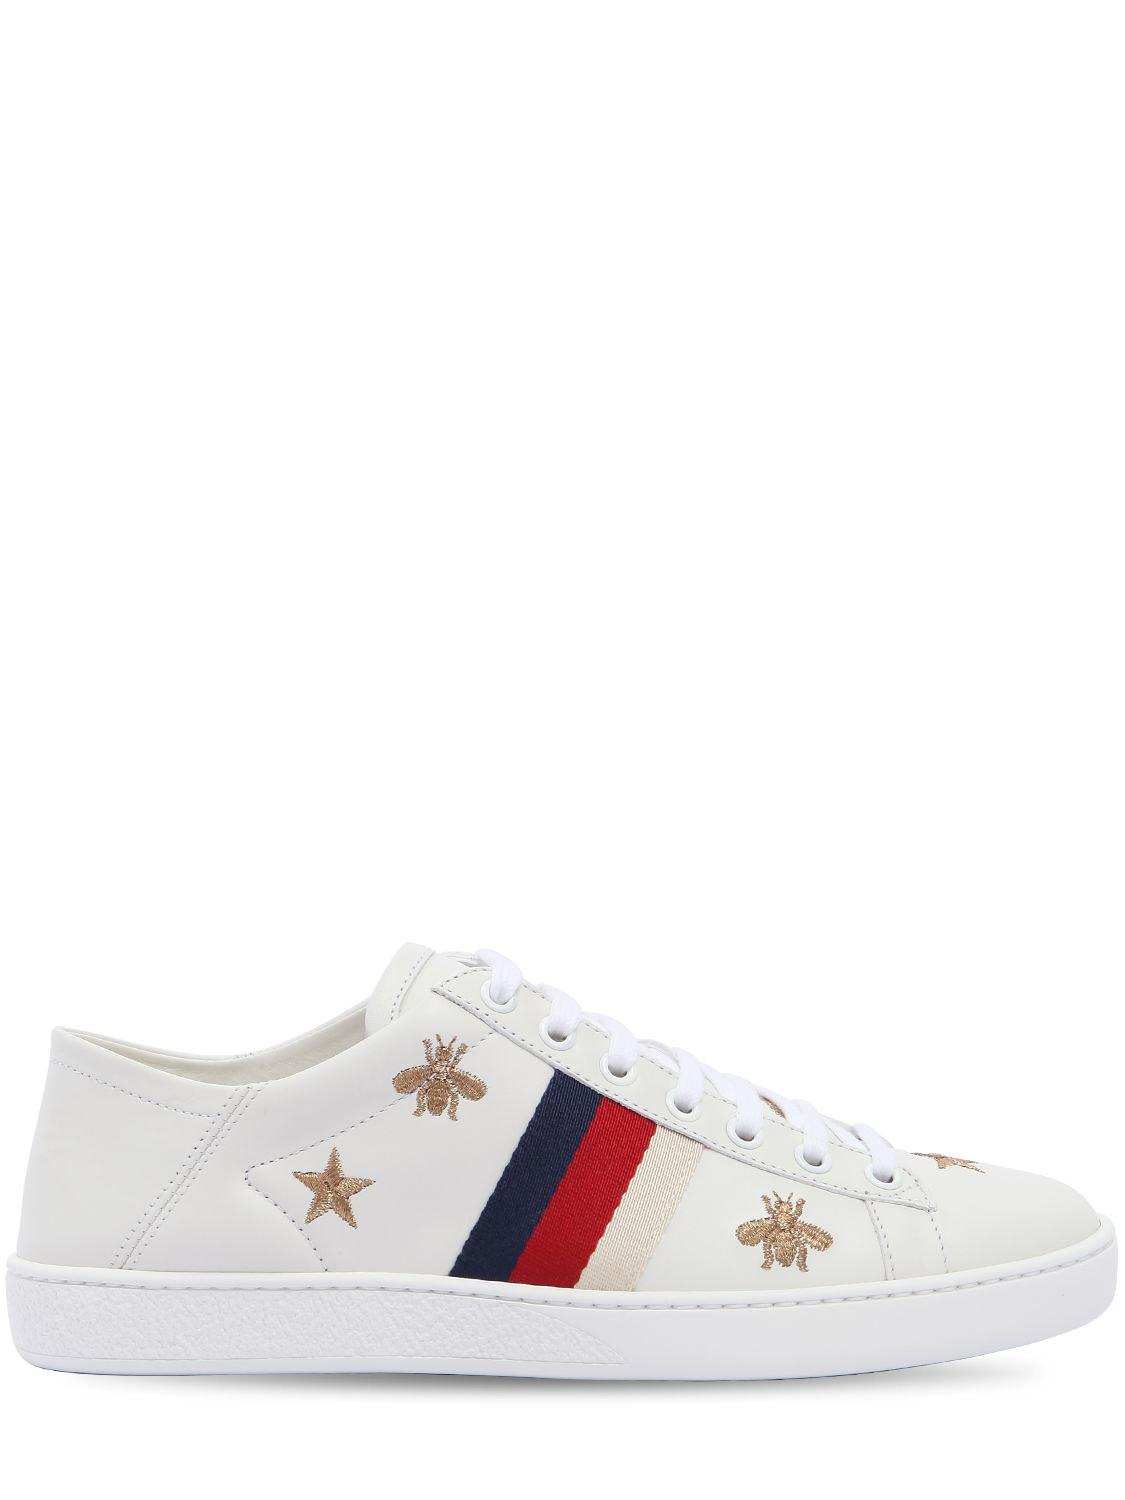 938949a0704 Gucci New Ace Embroidered Leather Mule Sneaker in White - Lyst